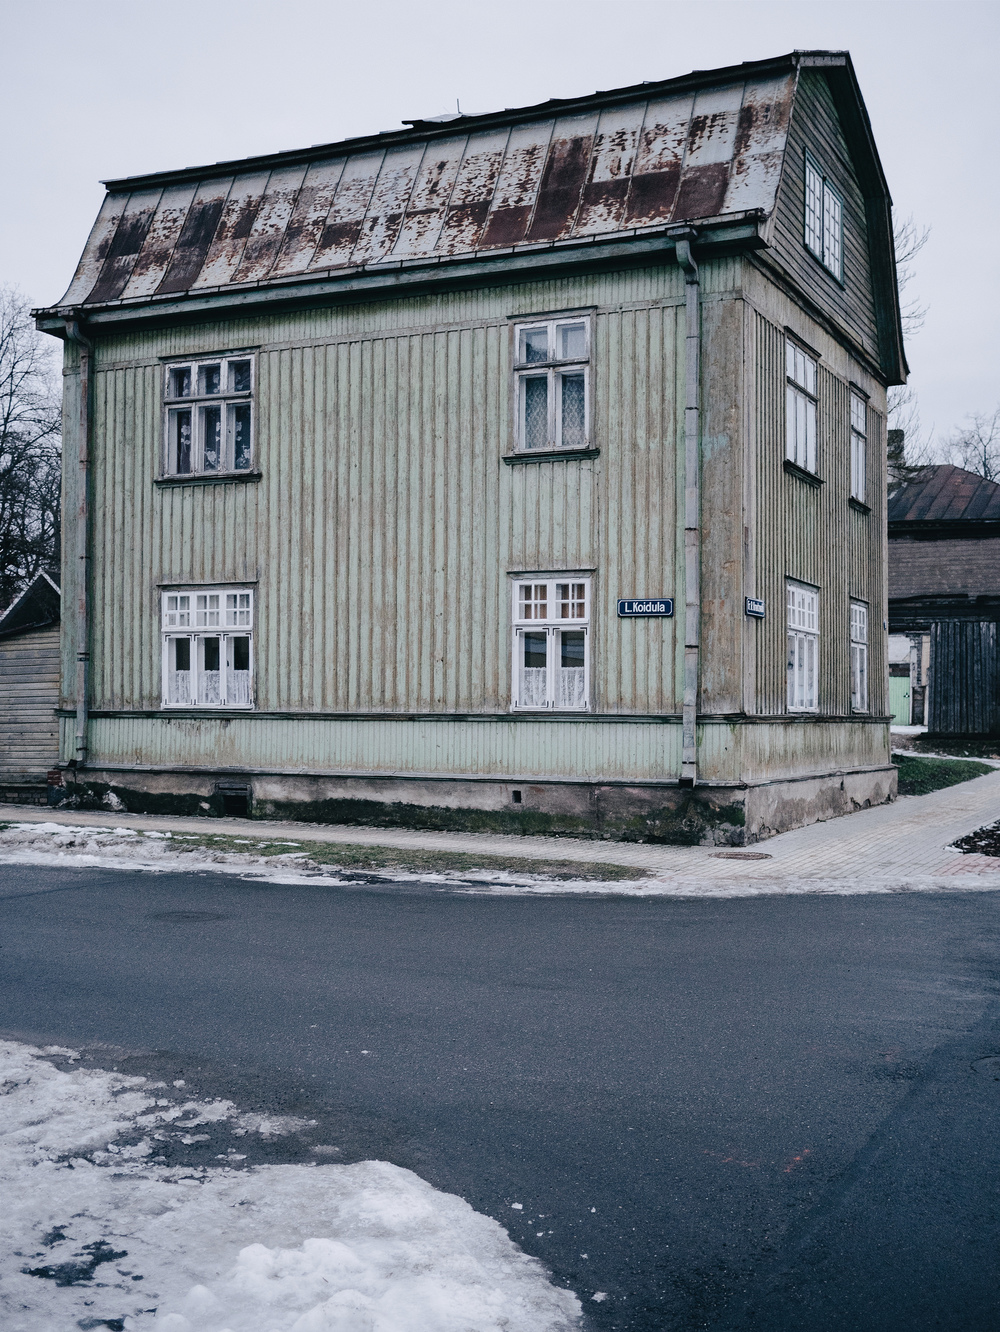 Corner of Koidula & Kreutzwaldi, Võru, Estonia. January 2015.